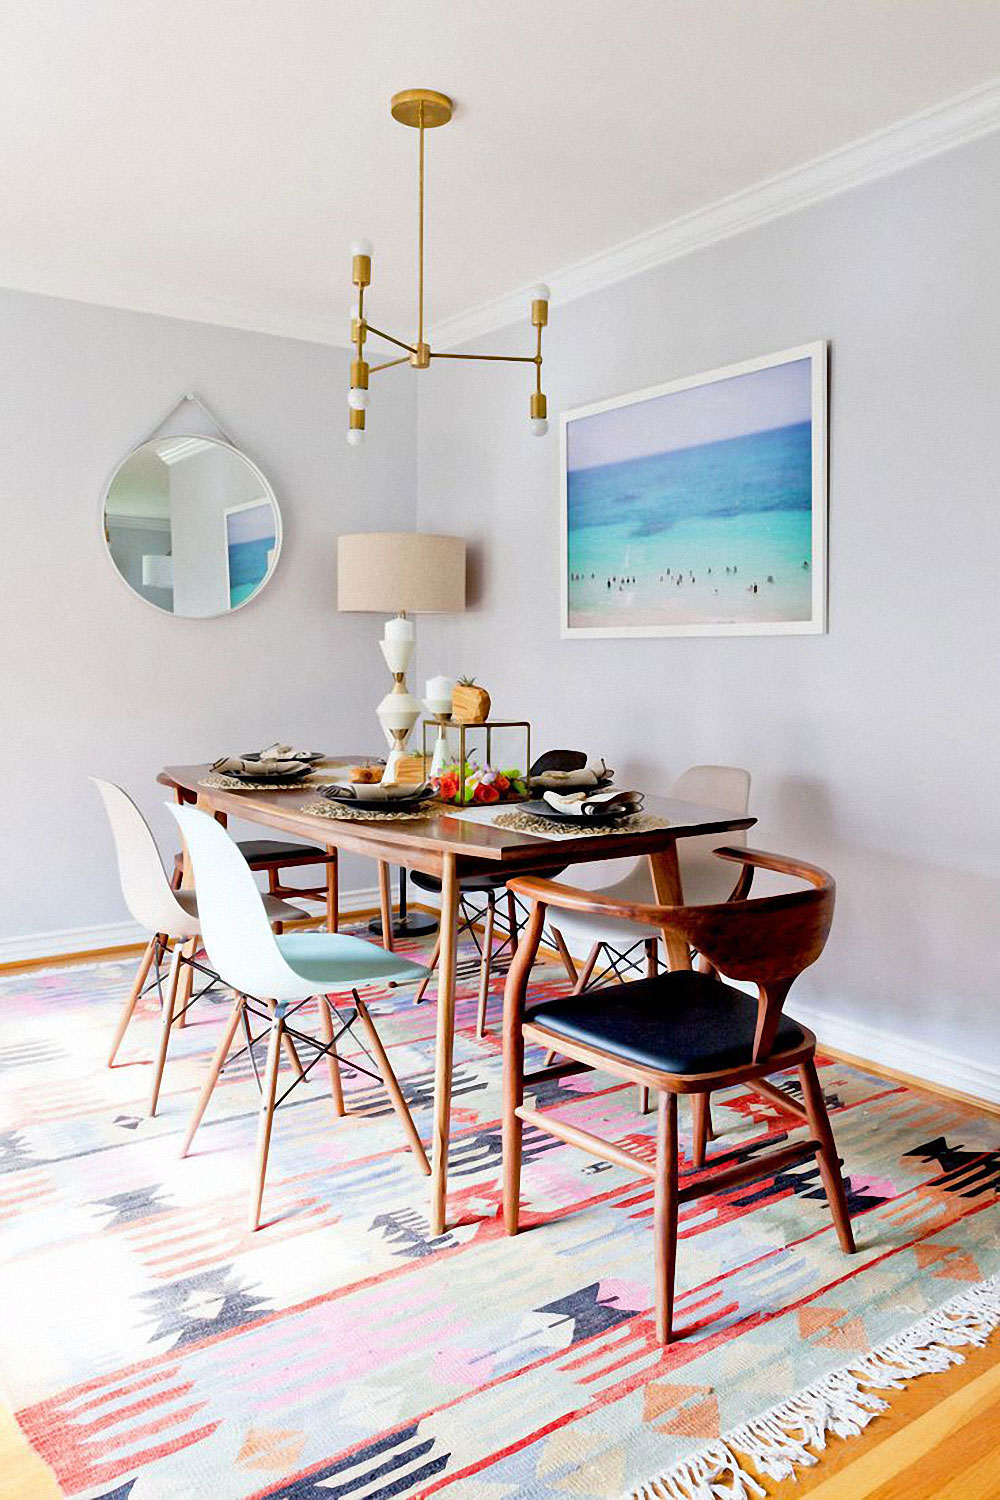 12 Swoonworthy Dining Rooms You'll Love!